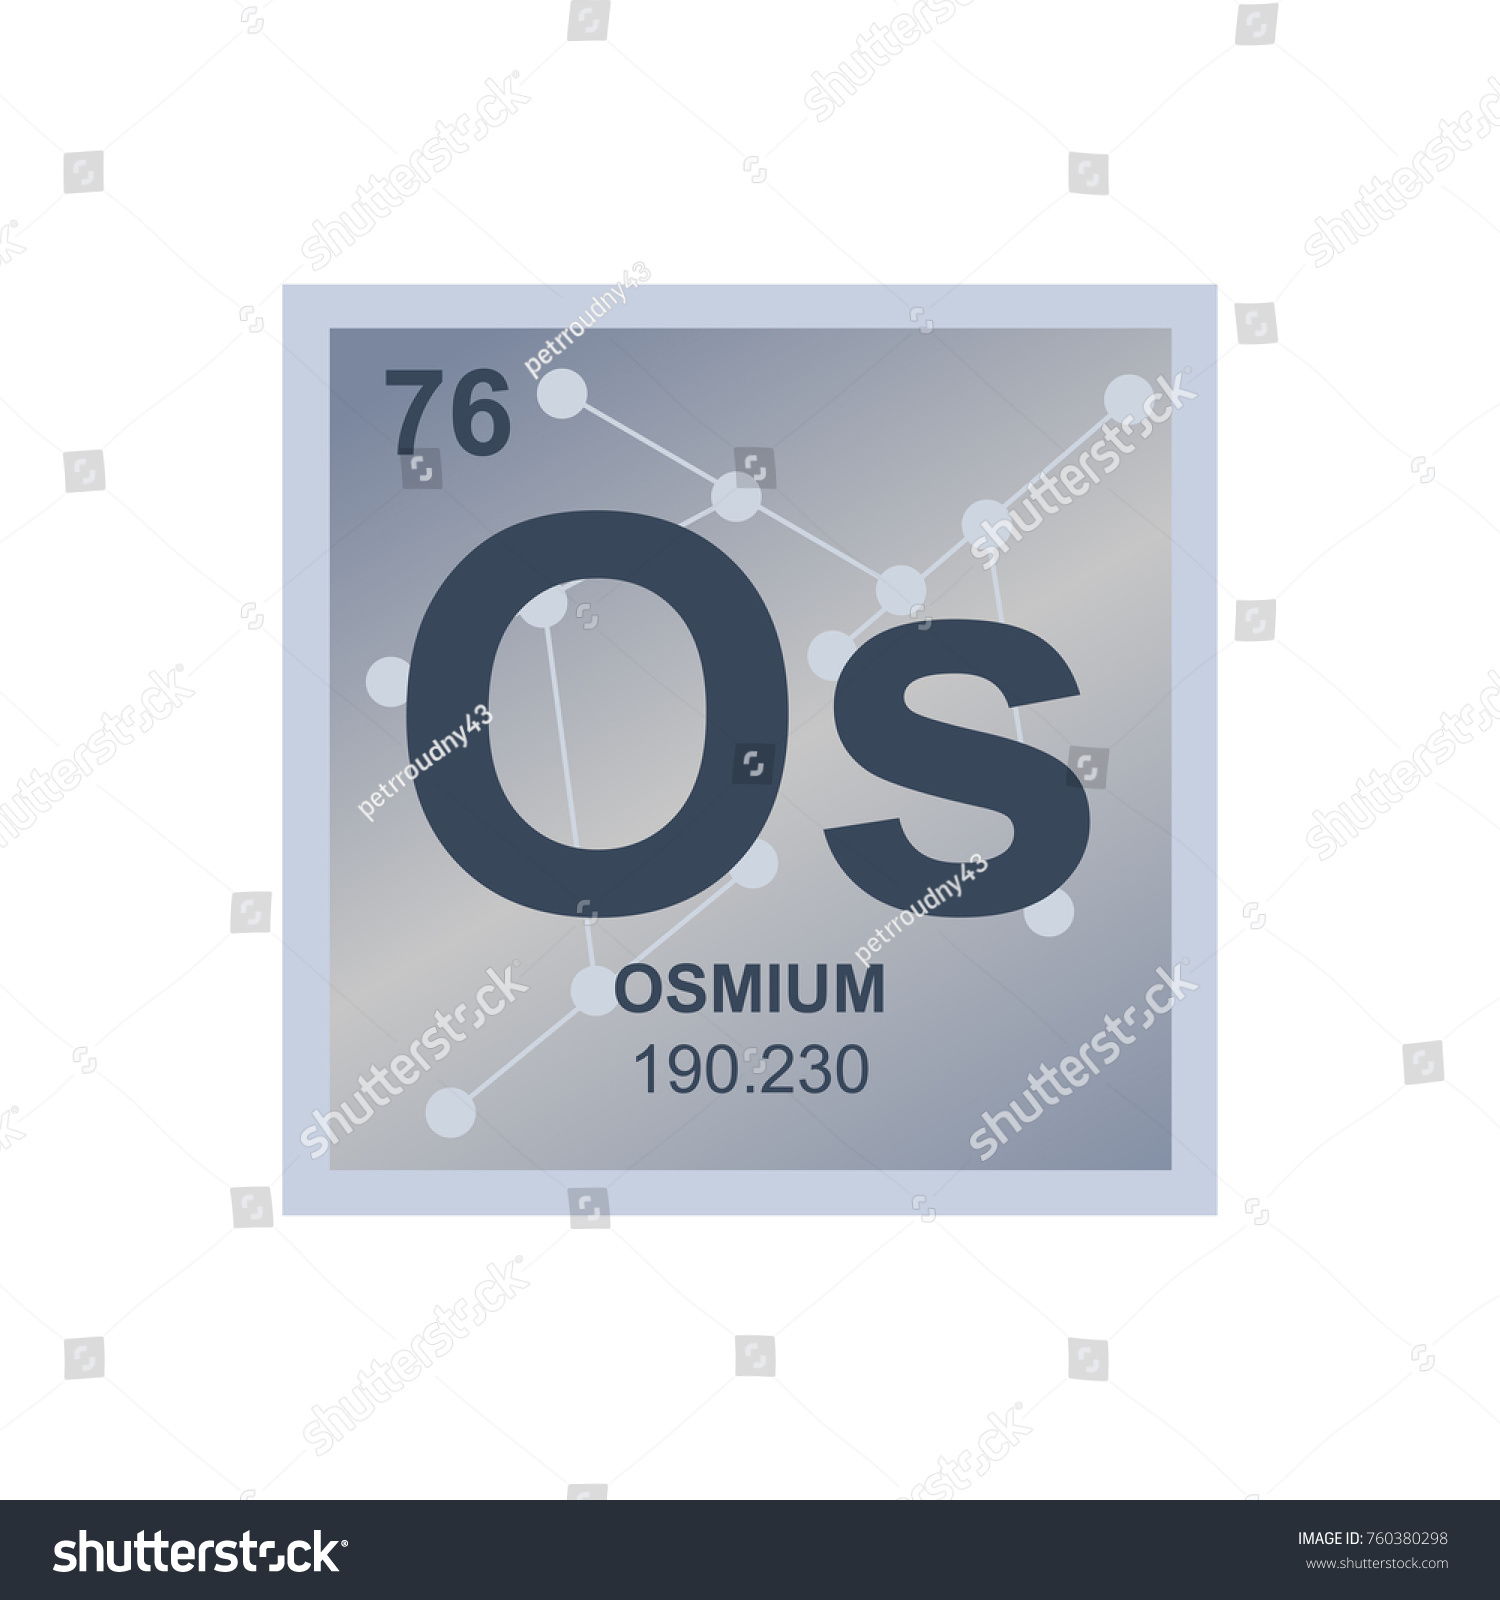 Sn symbol periodic table gallery periodic table images sn symbol periodic table image collections periodic table images symbol of tin in the periodic table gamestrikefo Gallery